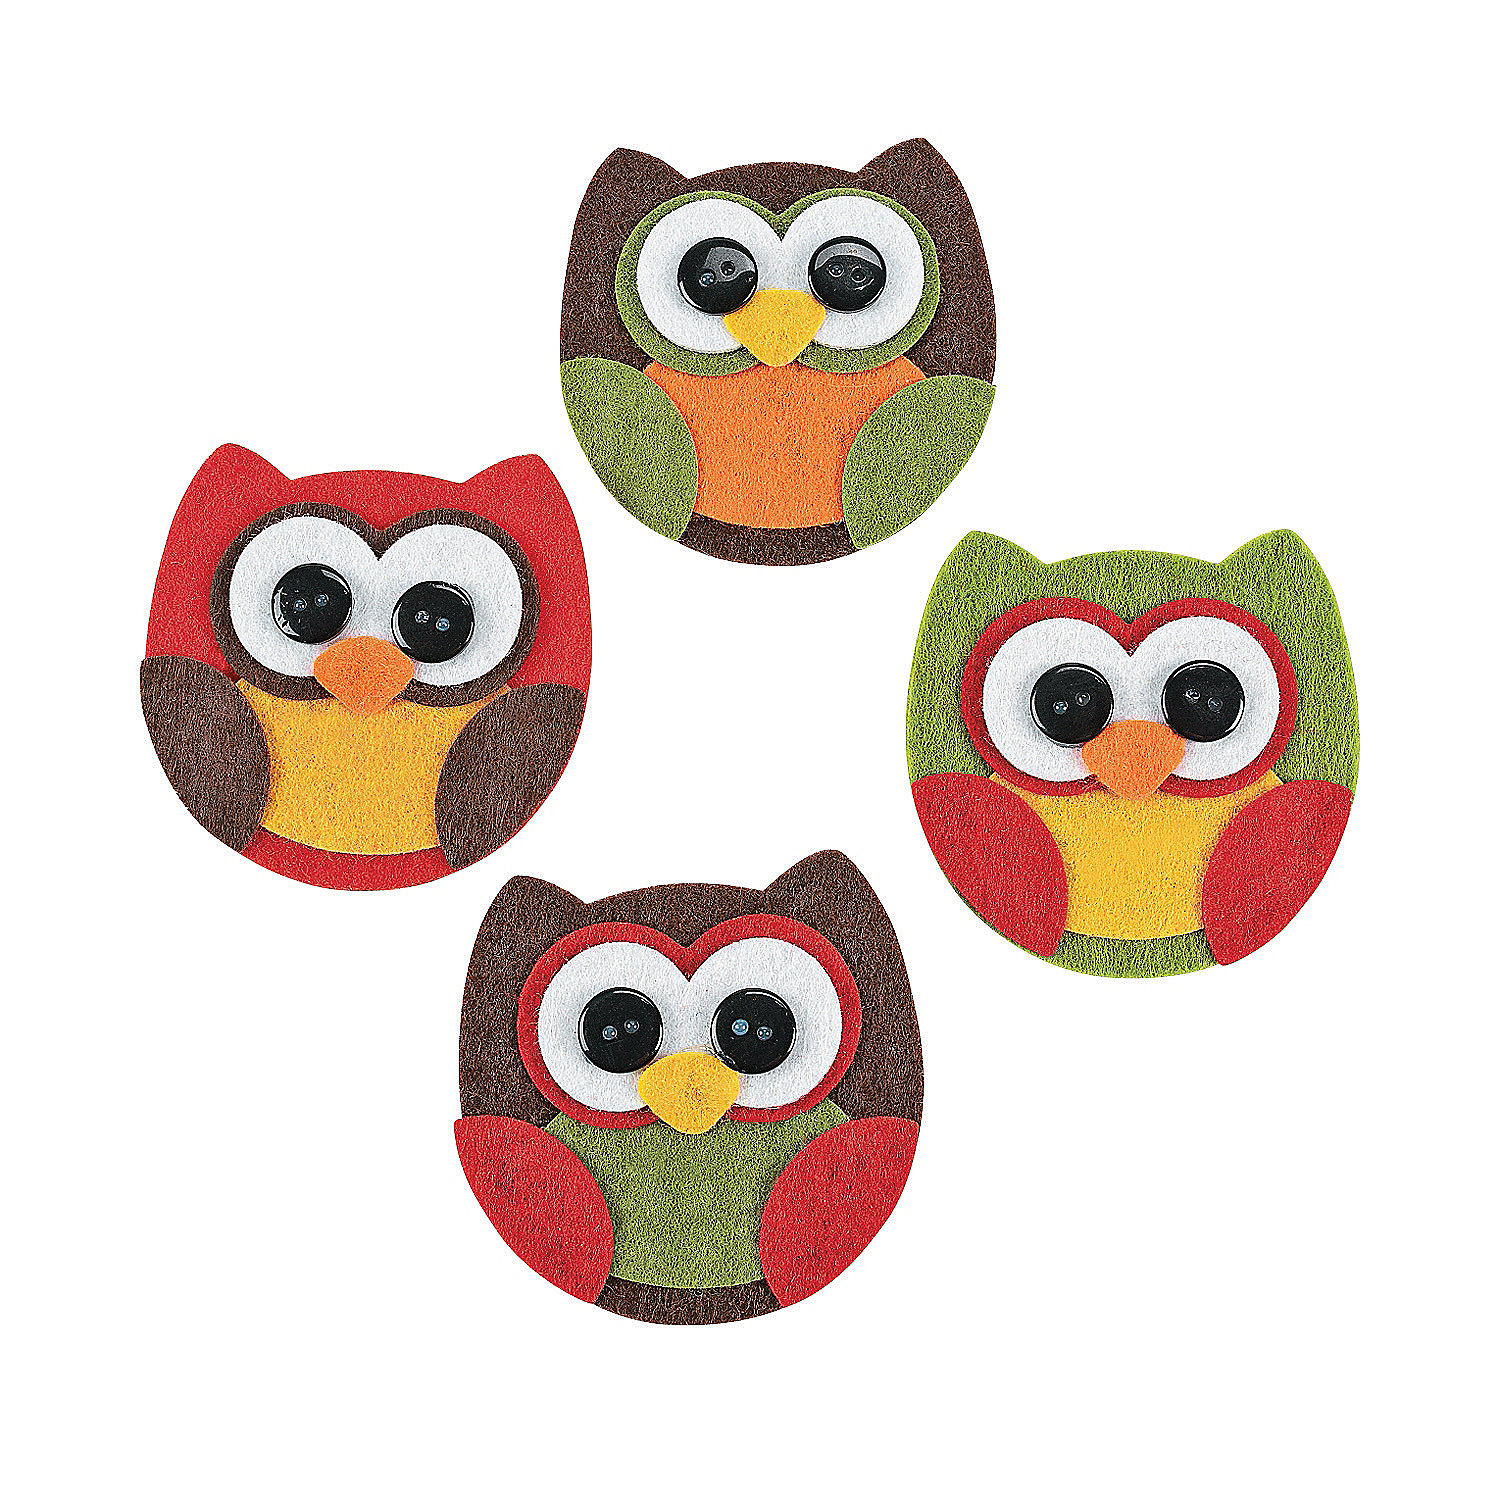 Owl pin craft kit jewelry crafts adult crafts craft for Craft kits for adults to make